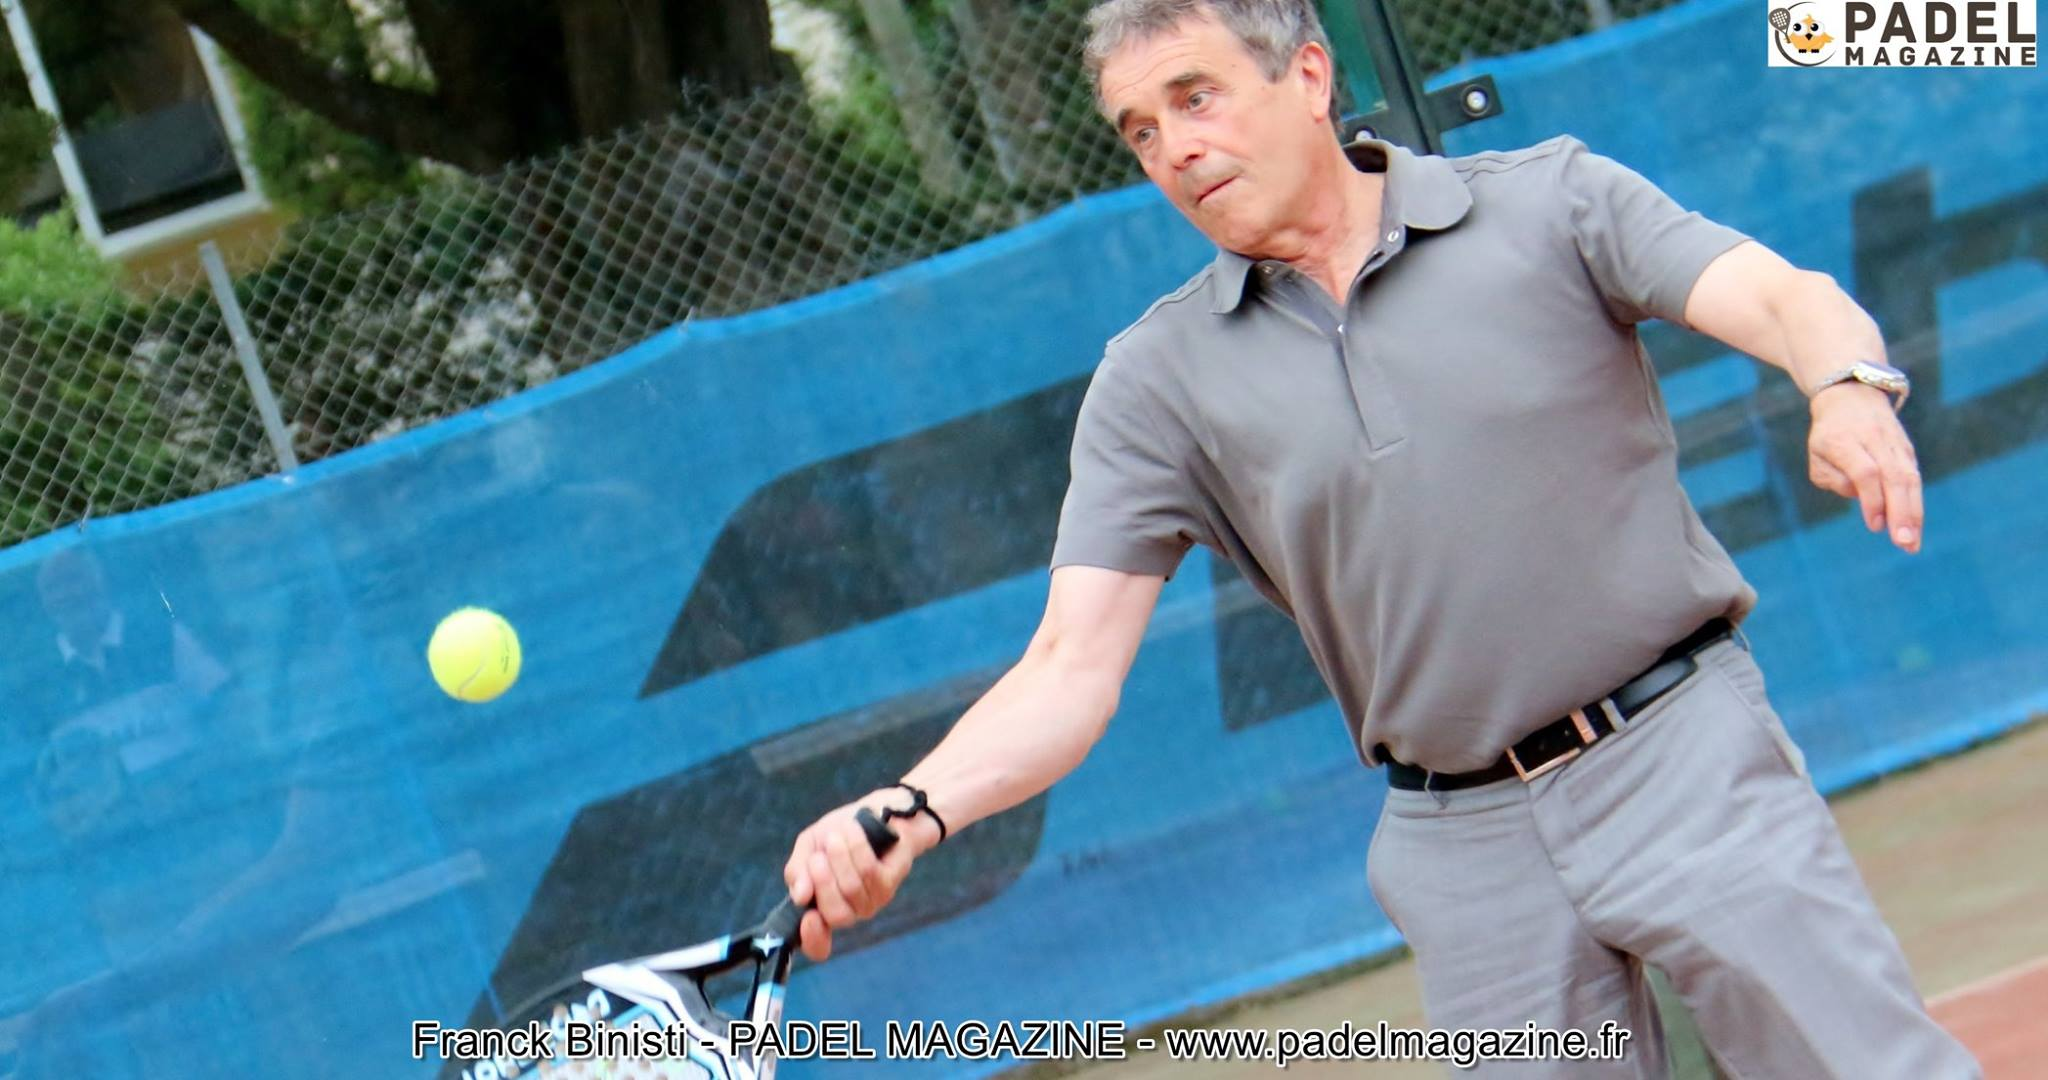 Interview de Jean-Pierre Dartevelle sur la structuration du padel